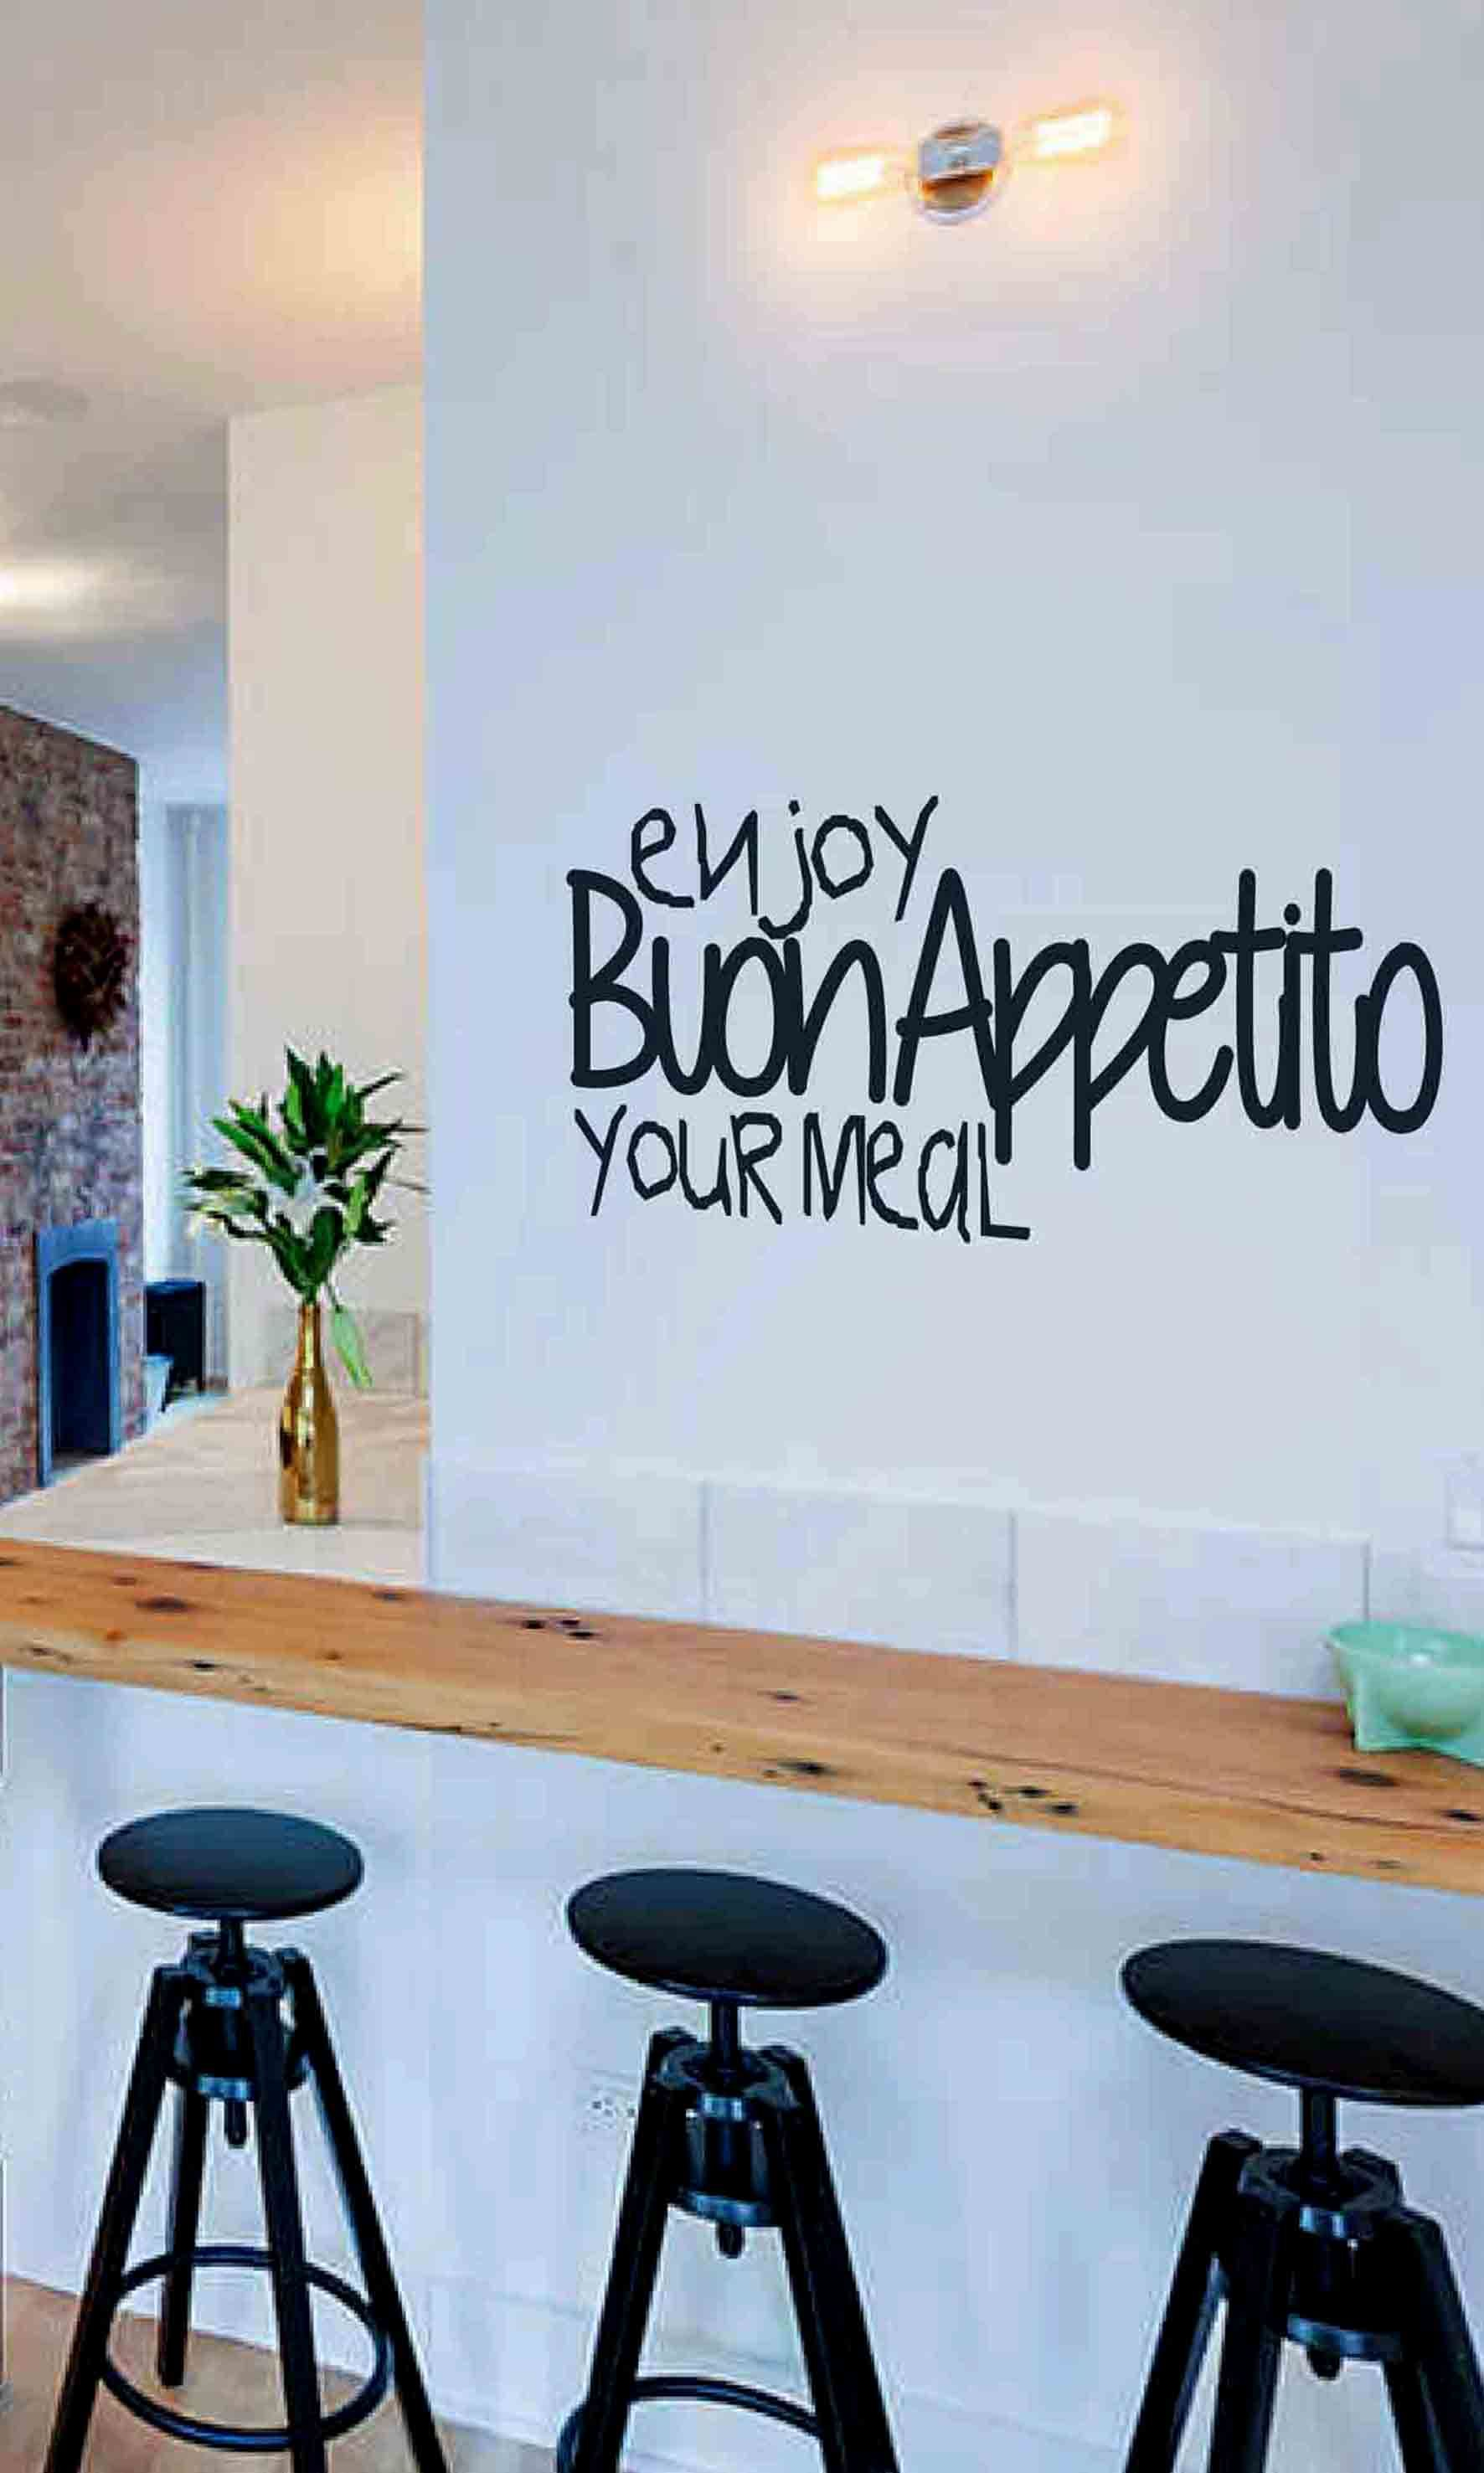 Enjoy your meal Wall sticker kitchen sticker wall decor   Etsy ...